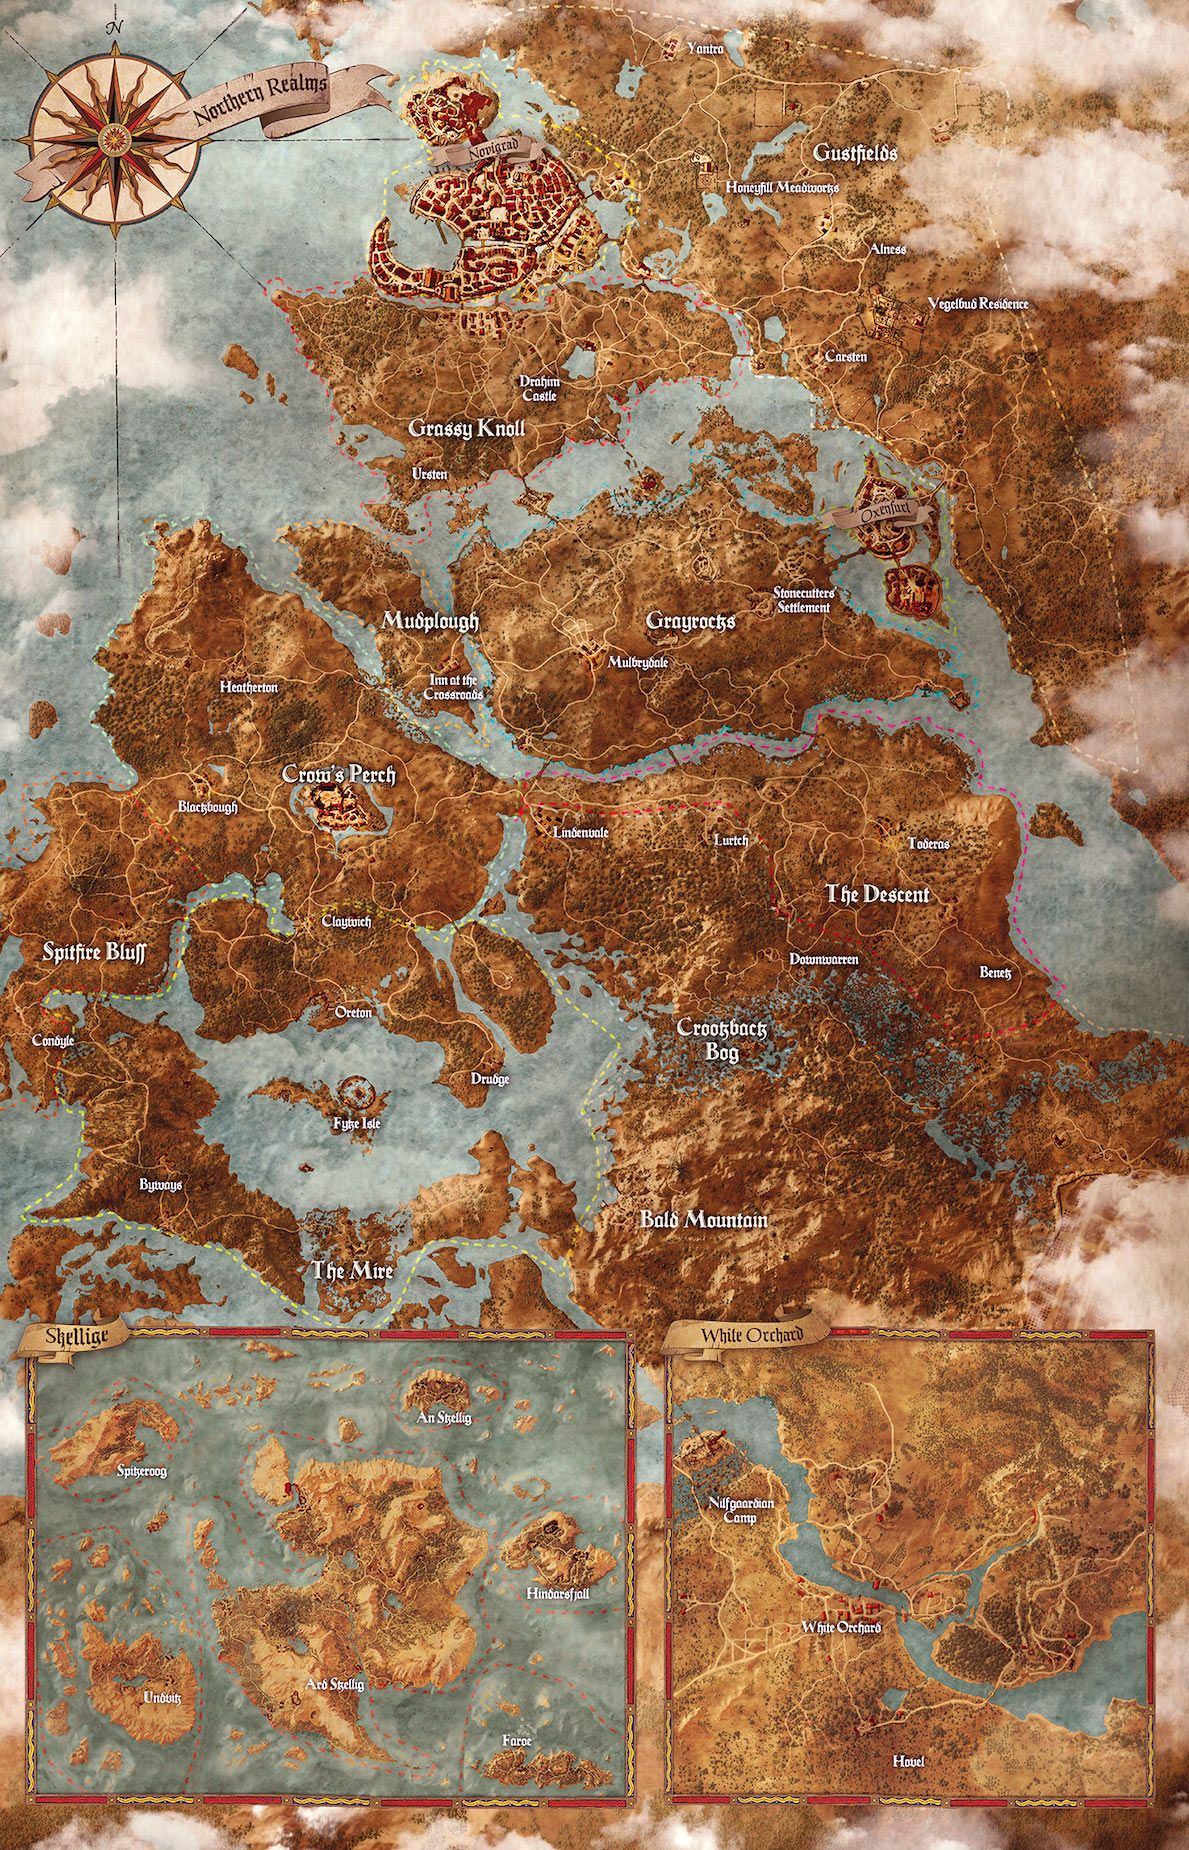 Painted map for The Witcher 3: Wild Hunt. | Hobby stuff in 2018 ...